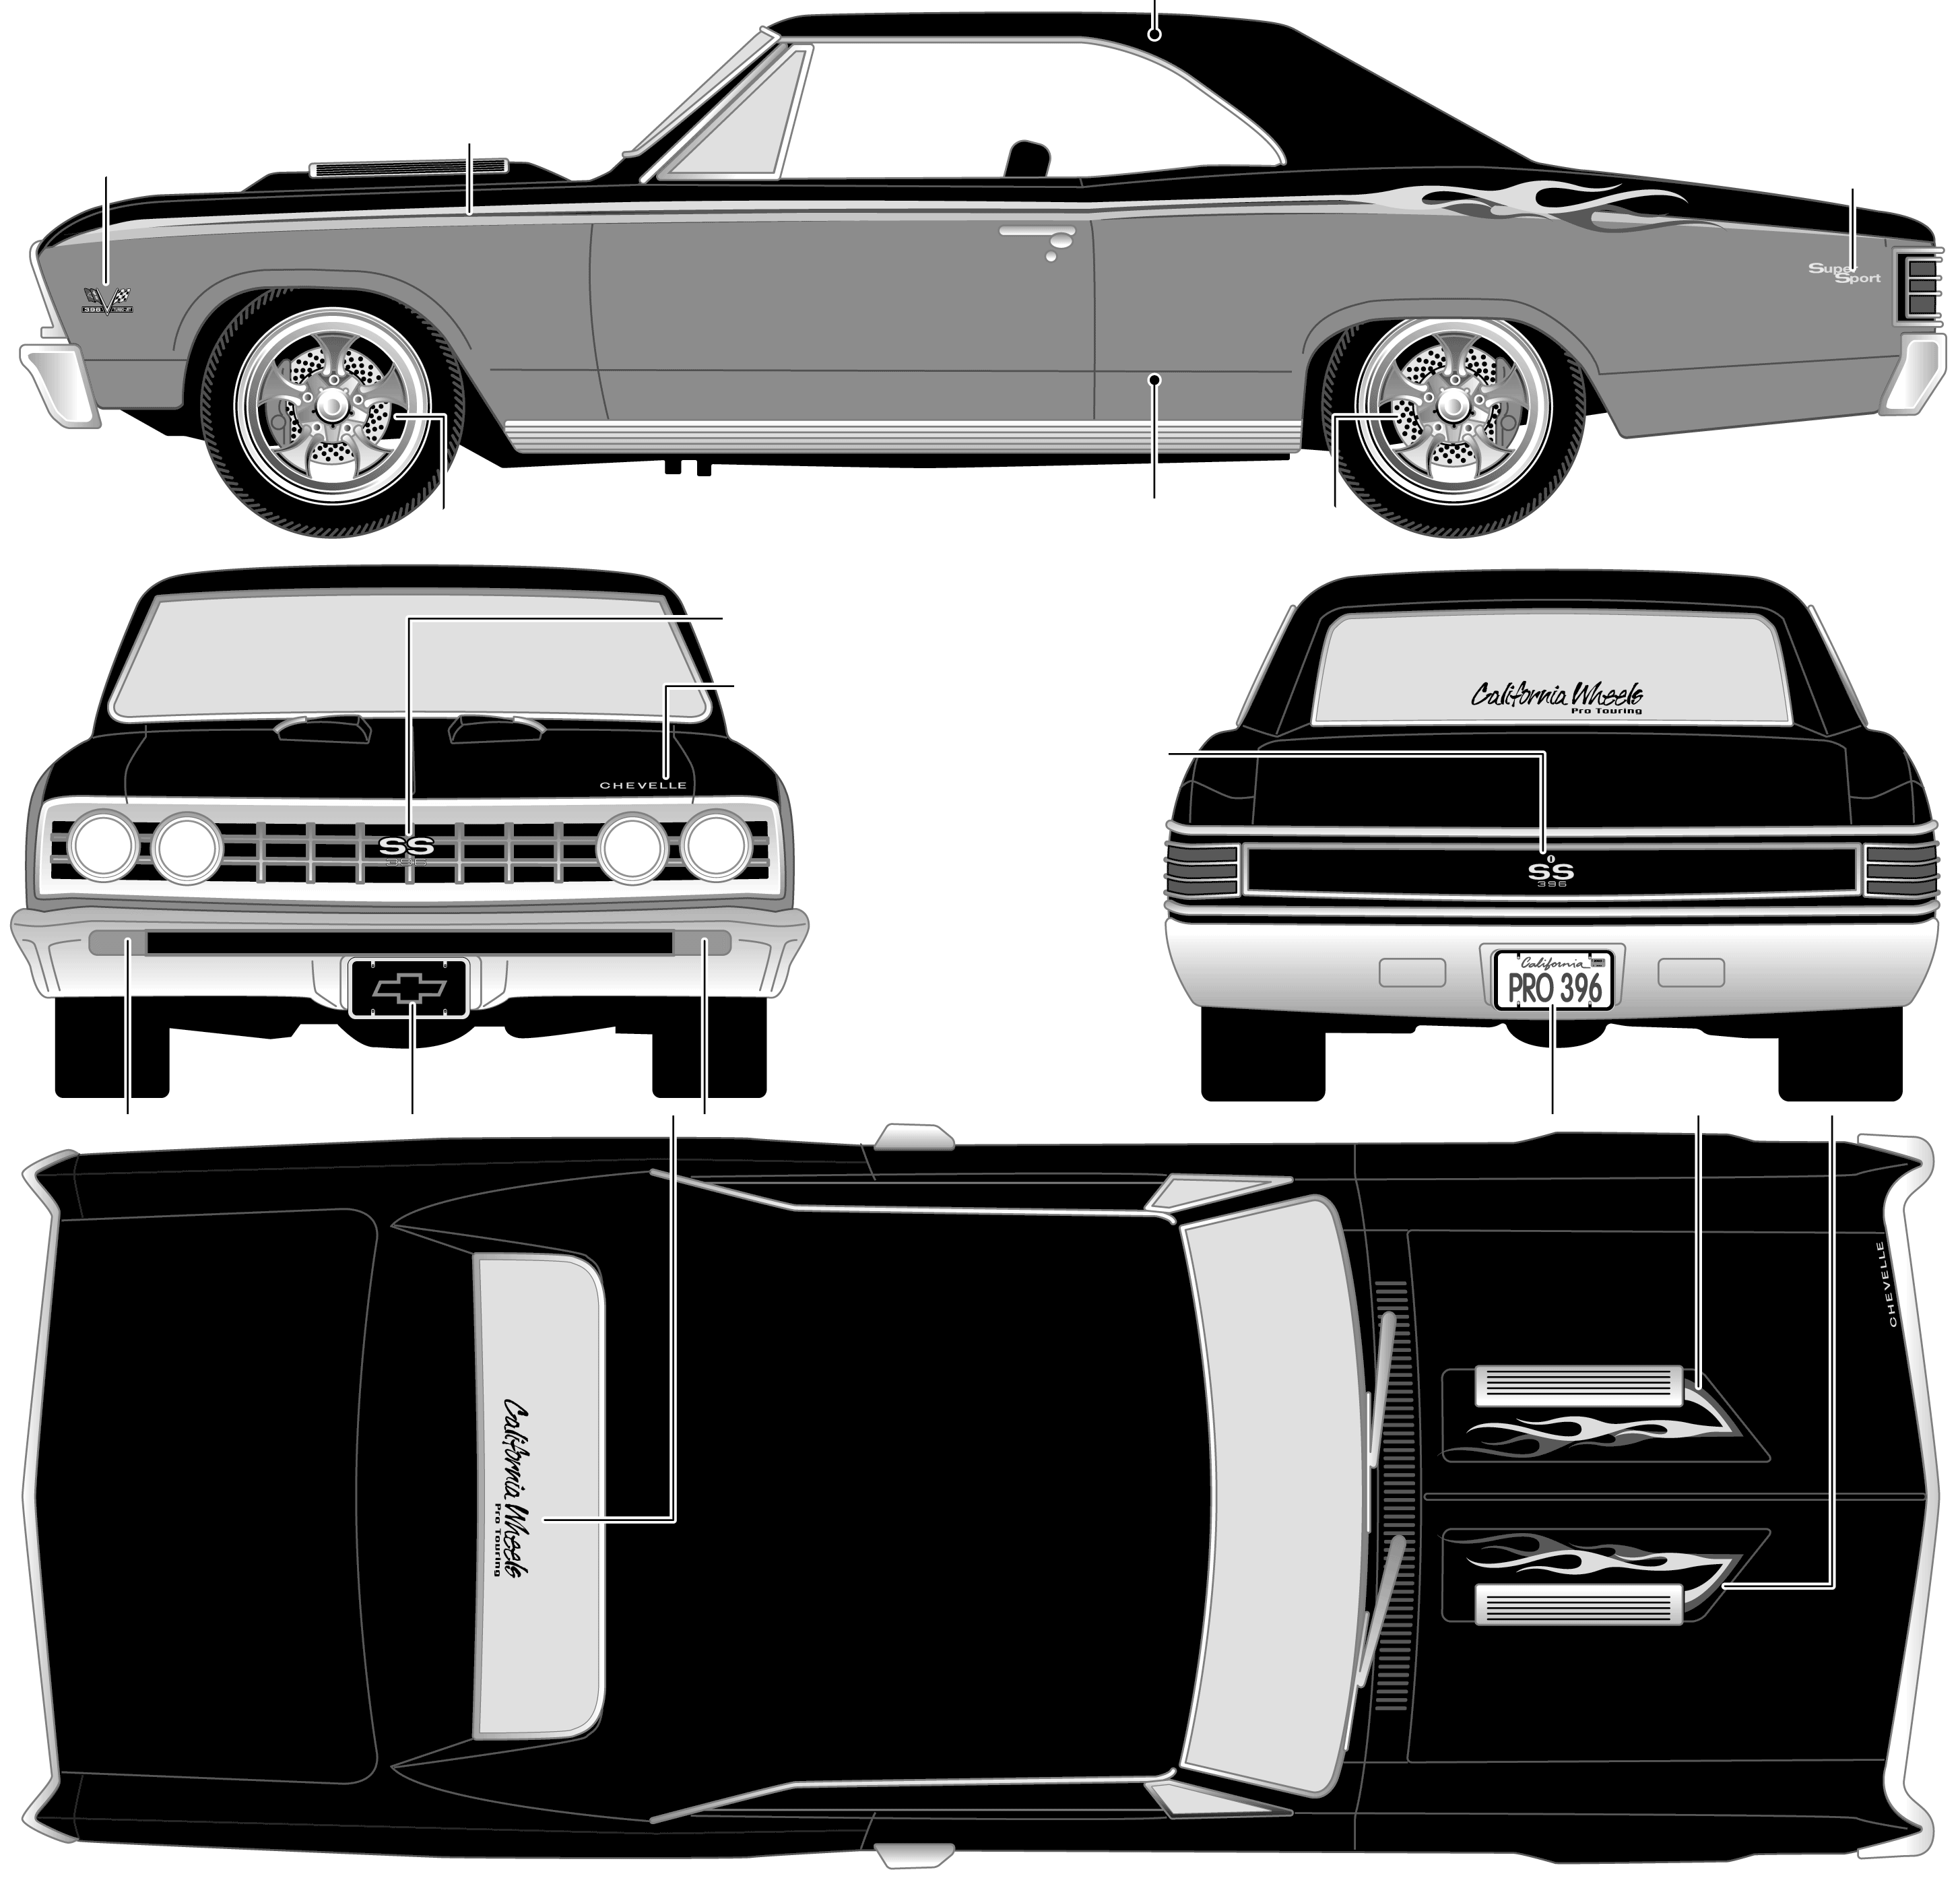 1967 Chevrolet Chevelle SS 396 Coupe blueprints free - Outlines